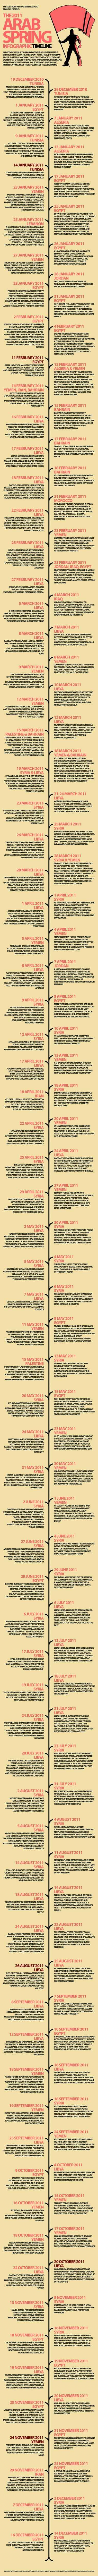 The 2011 Arab Spring Infographic Timeline